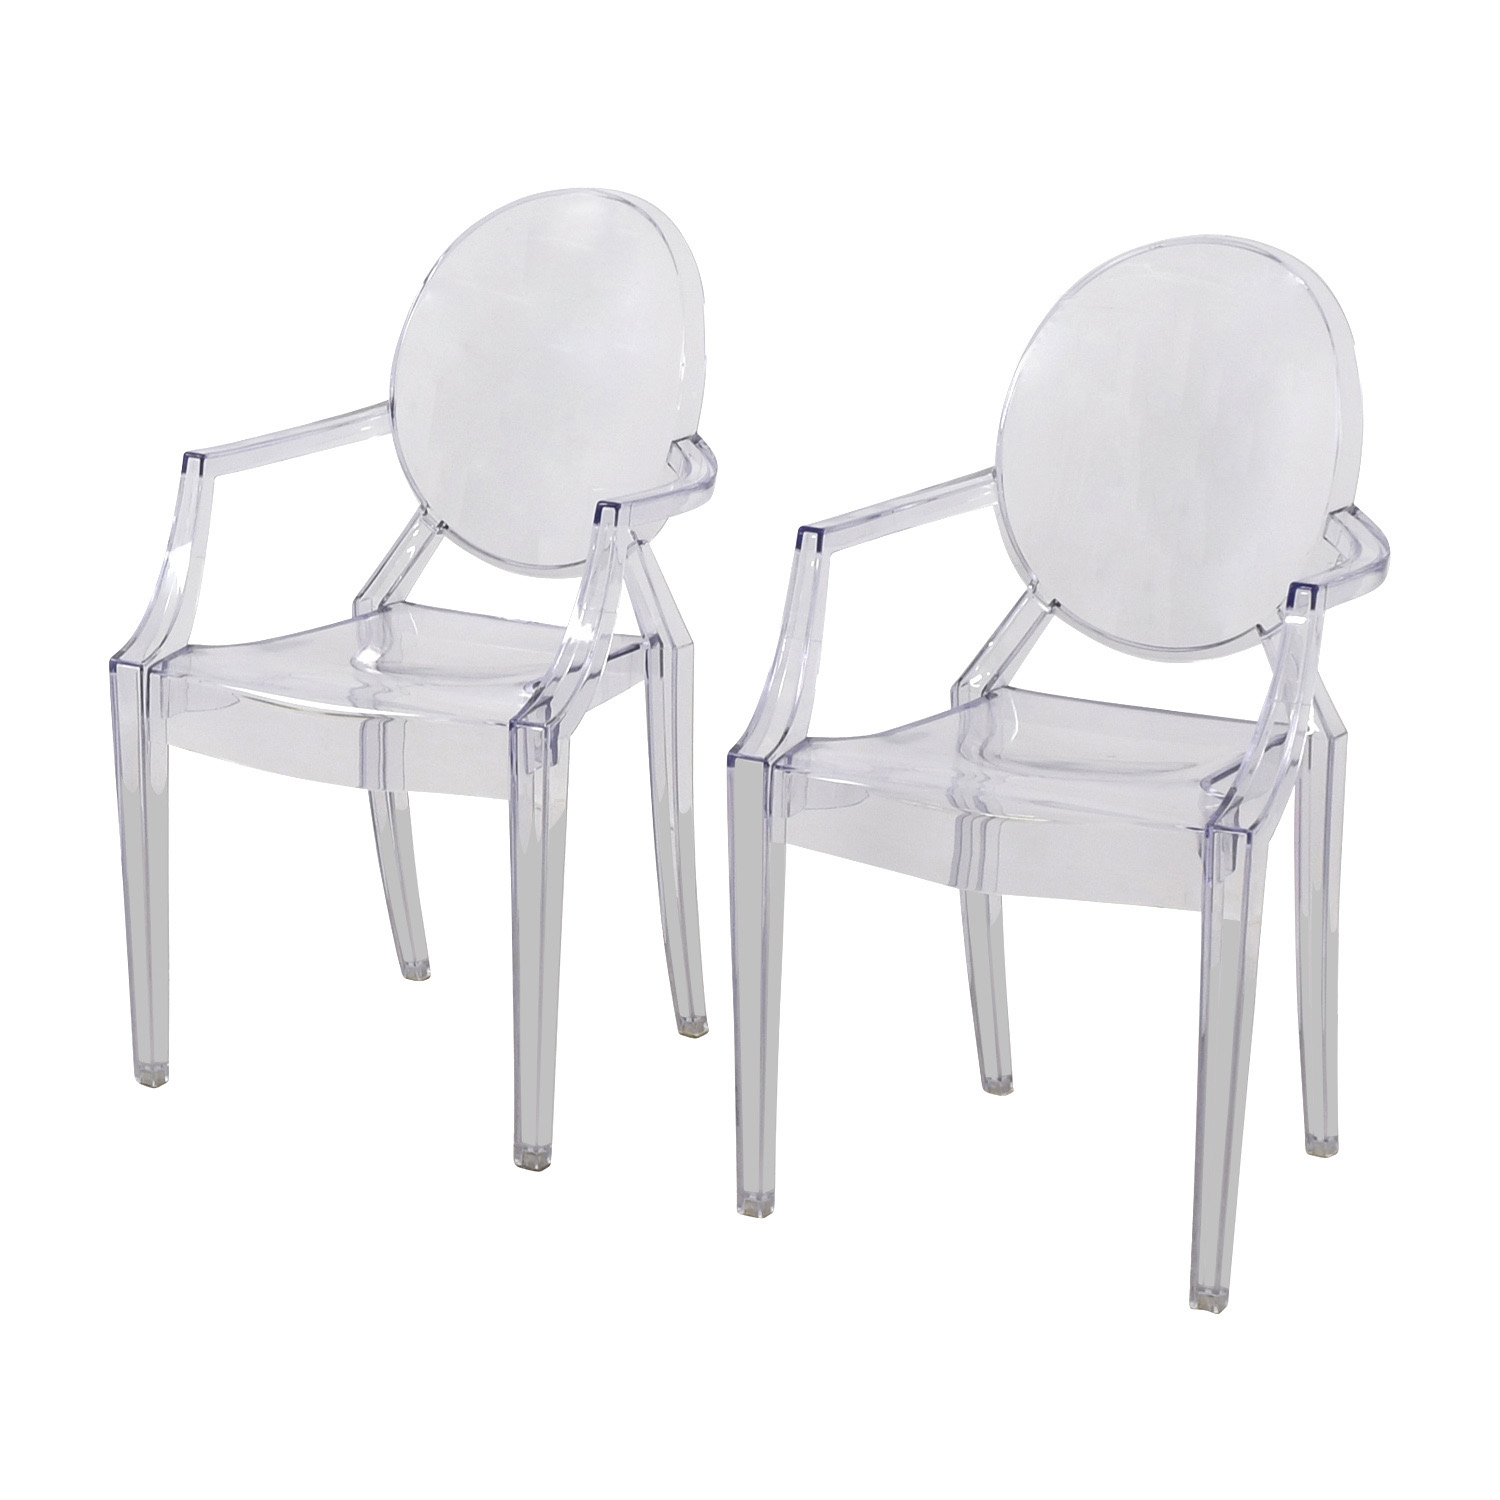 CB2 Acrylic Chairs sale